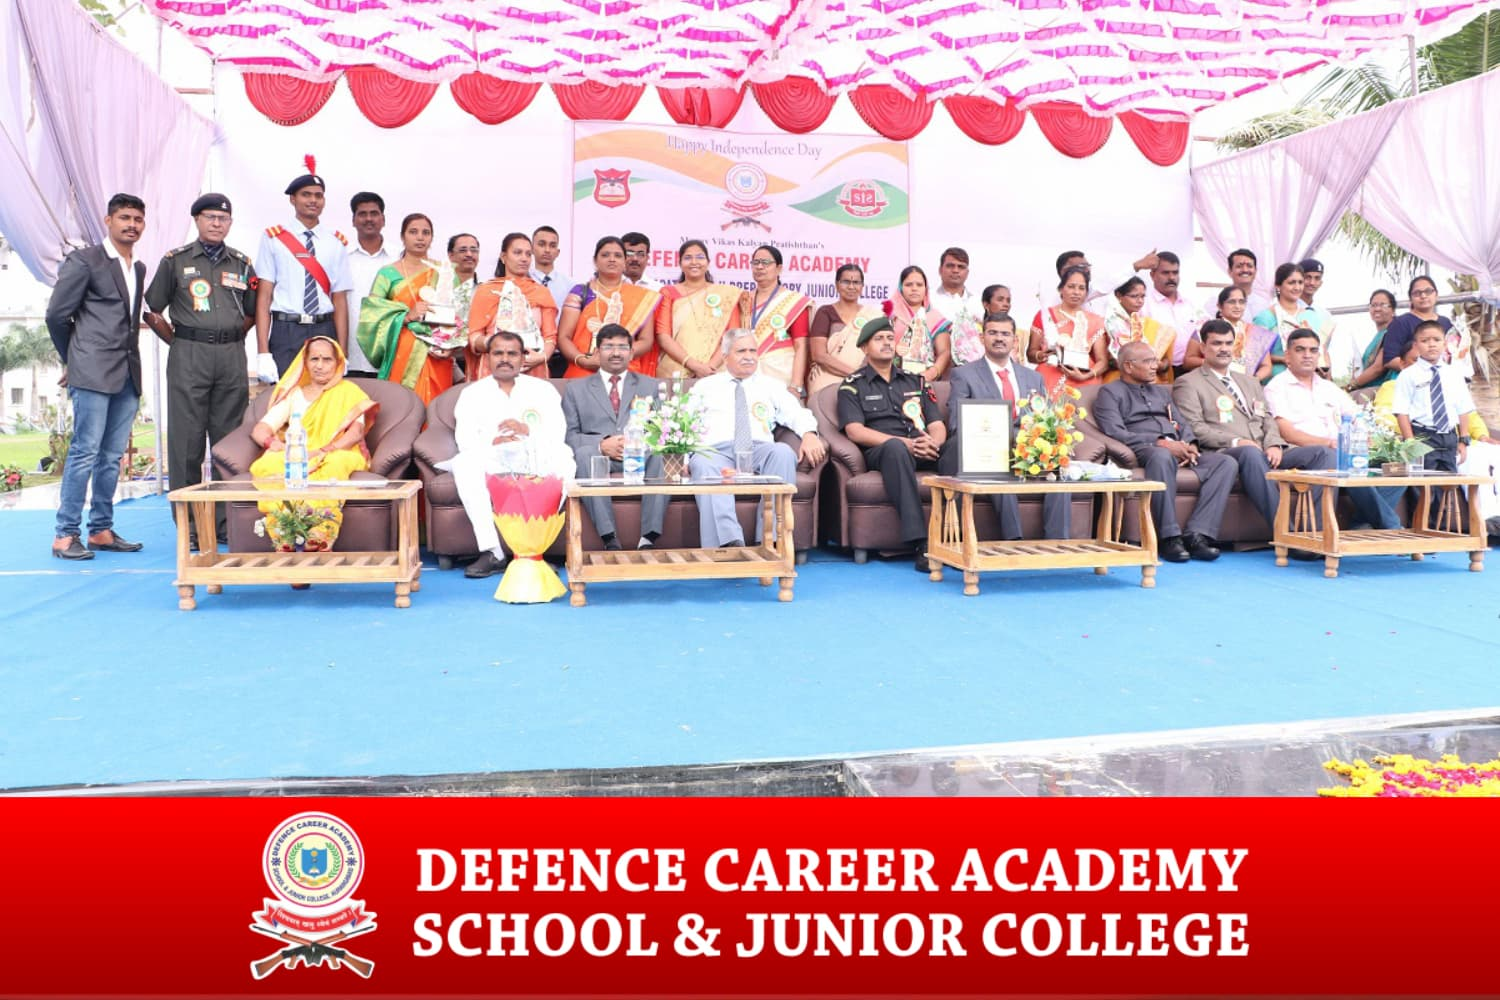 independence-day-celebration-SSR-Coaching-in-India-defence-career-academy-in-maharashtra